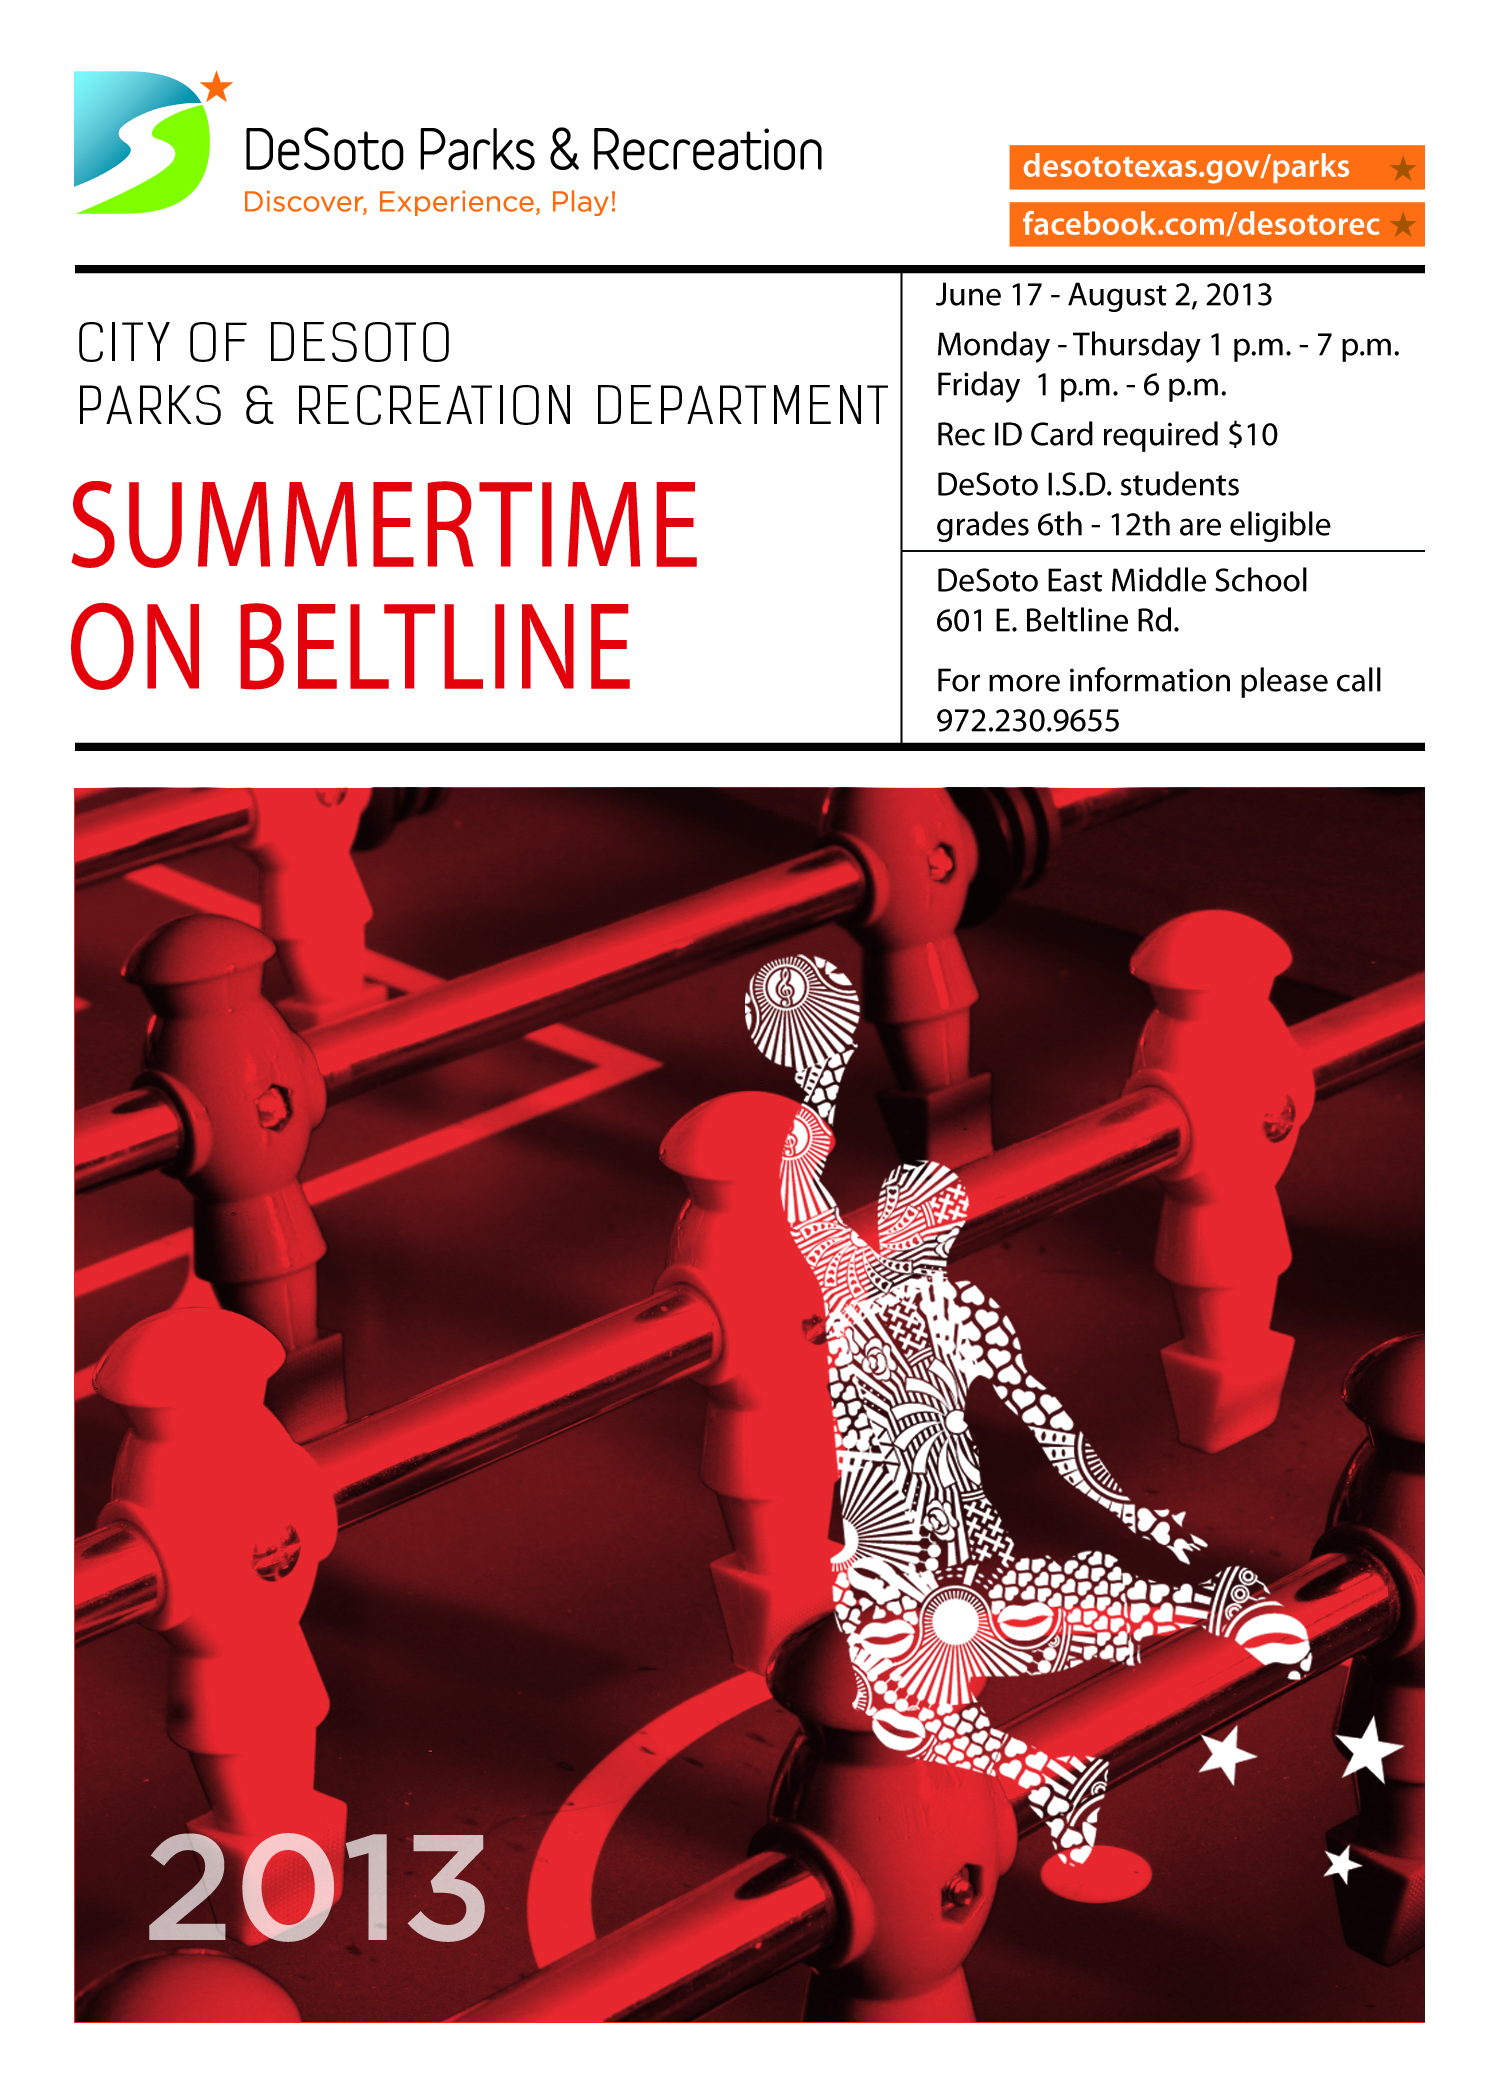 summertime on beltline back of card.jpg